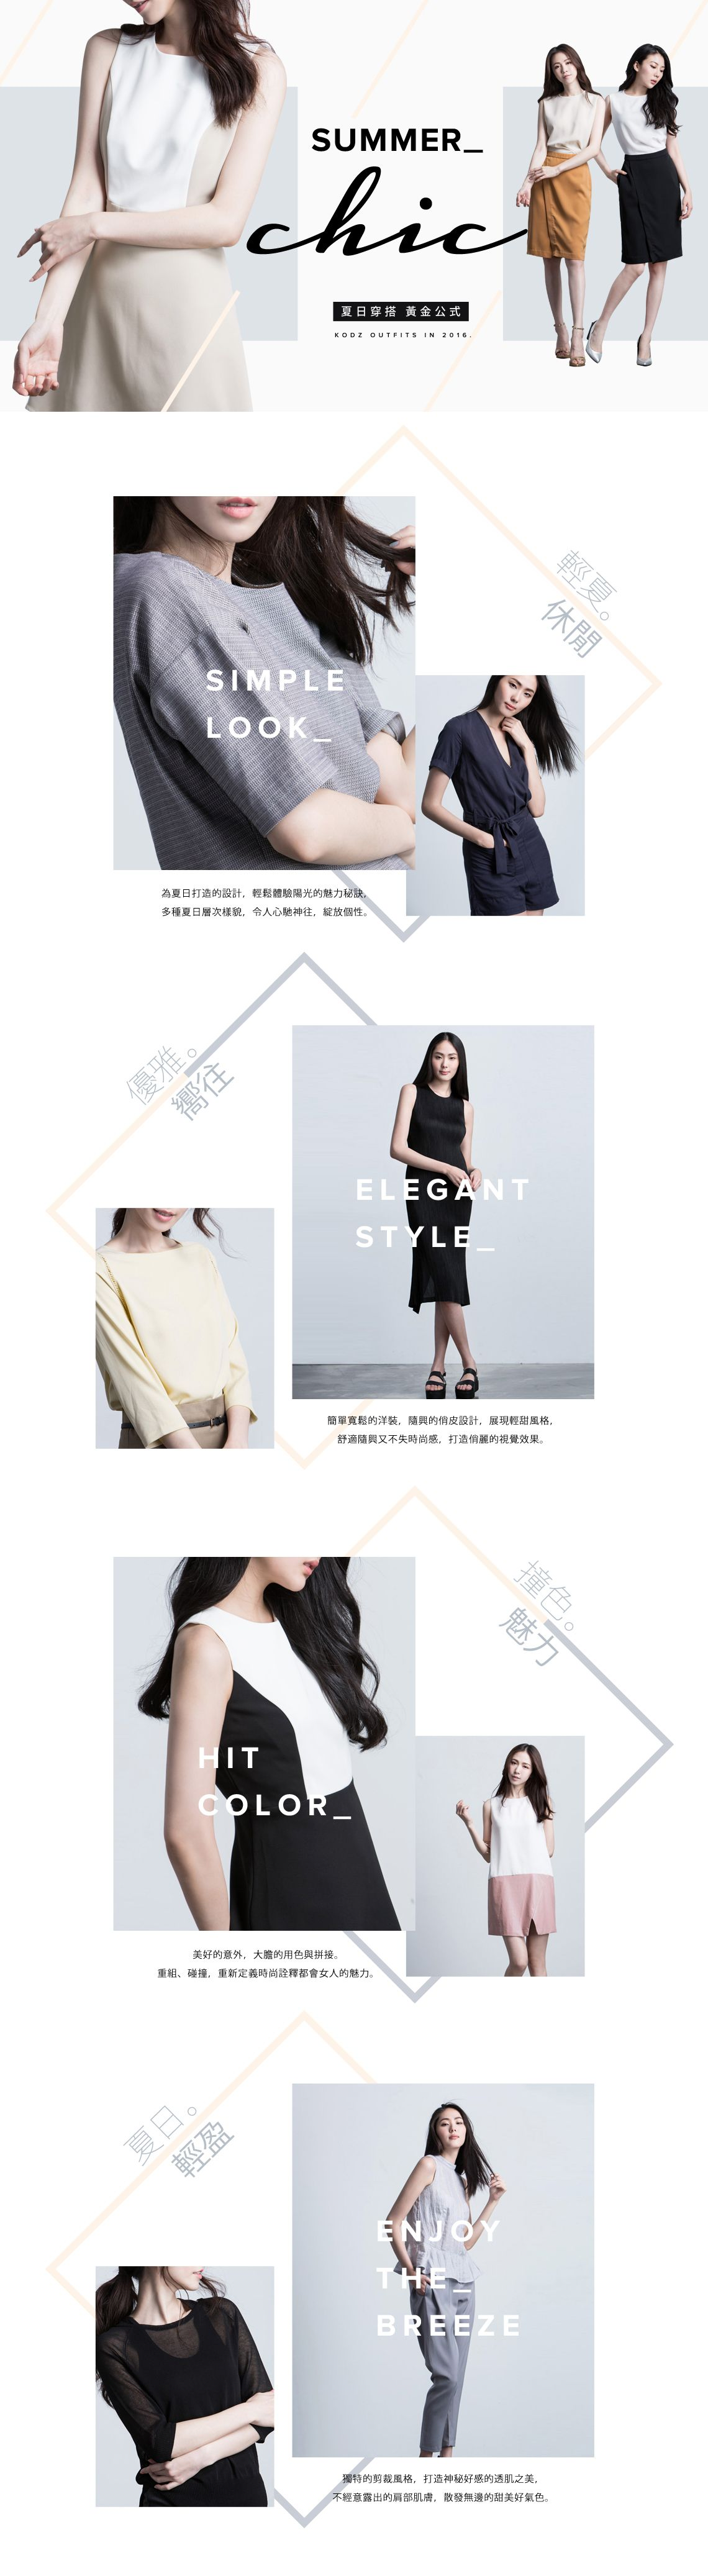 Urban Outfitters : NEW | Email Marketing Magic | Pinterest | Urban ...